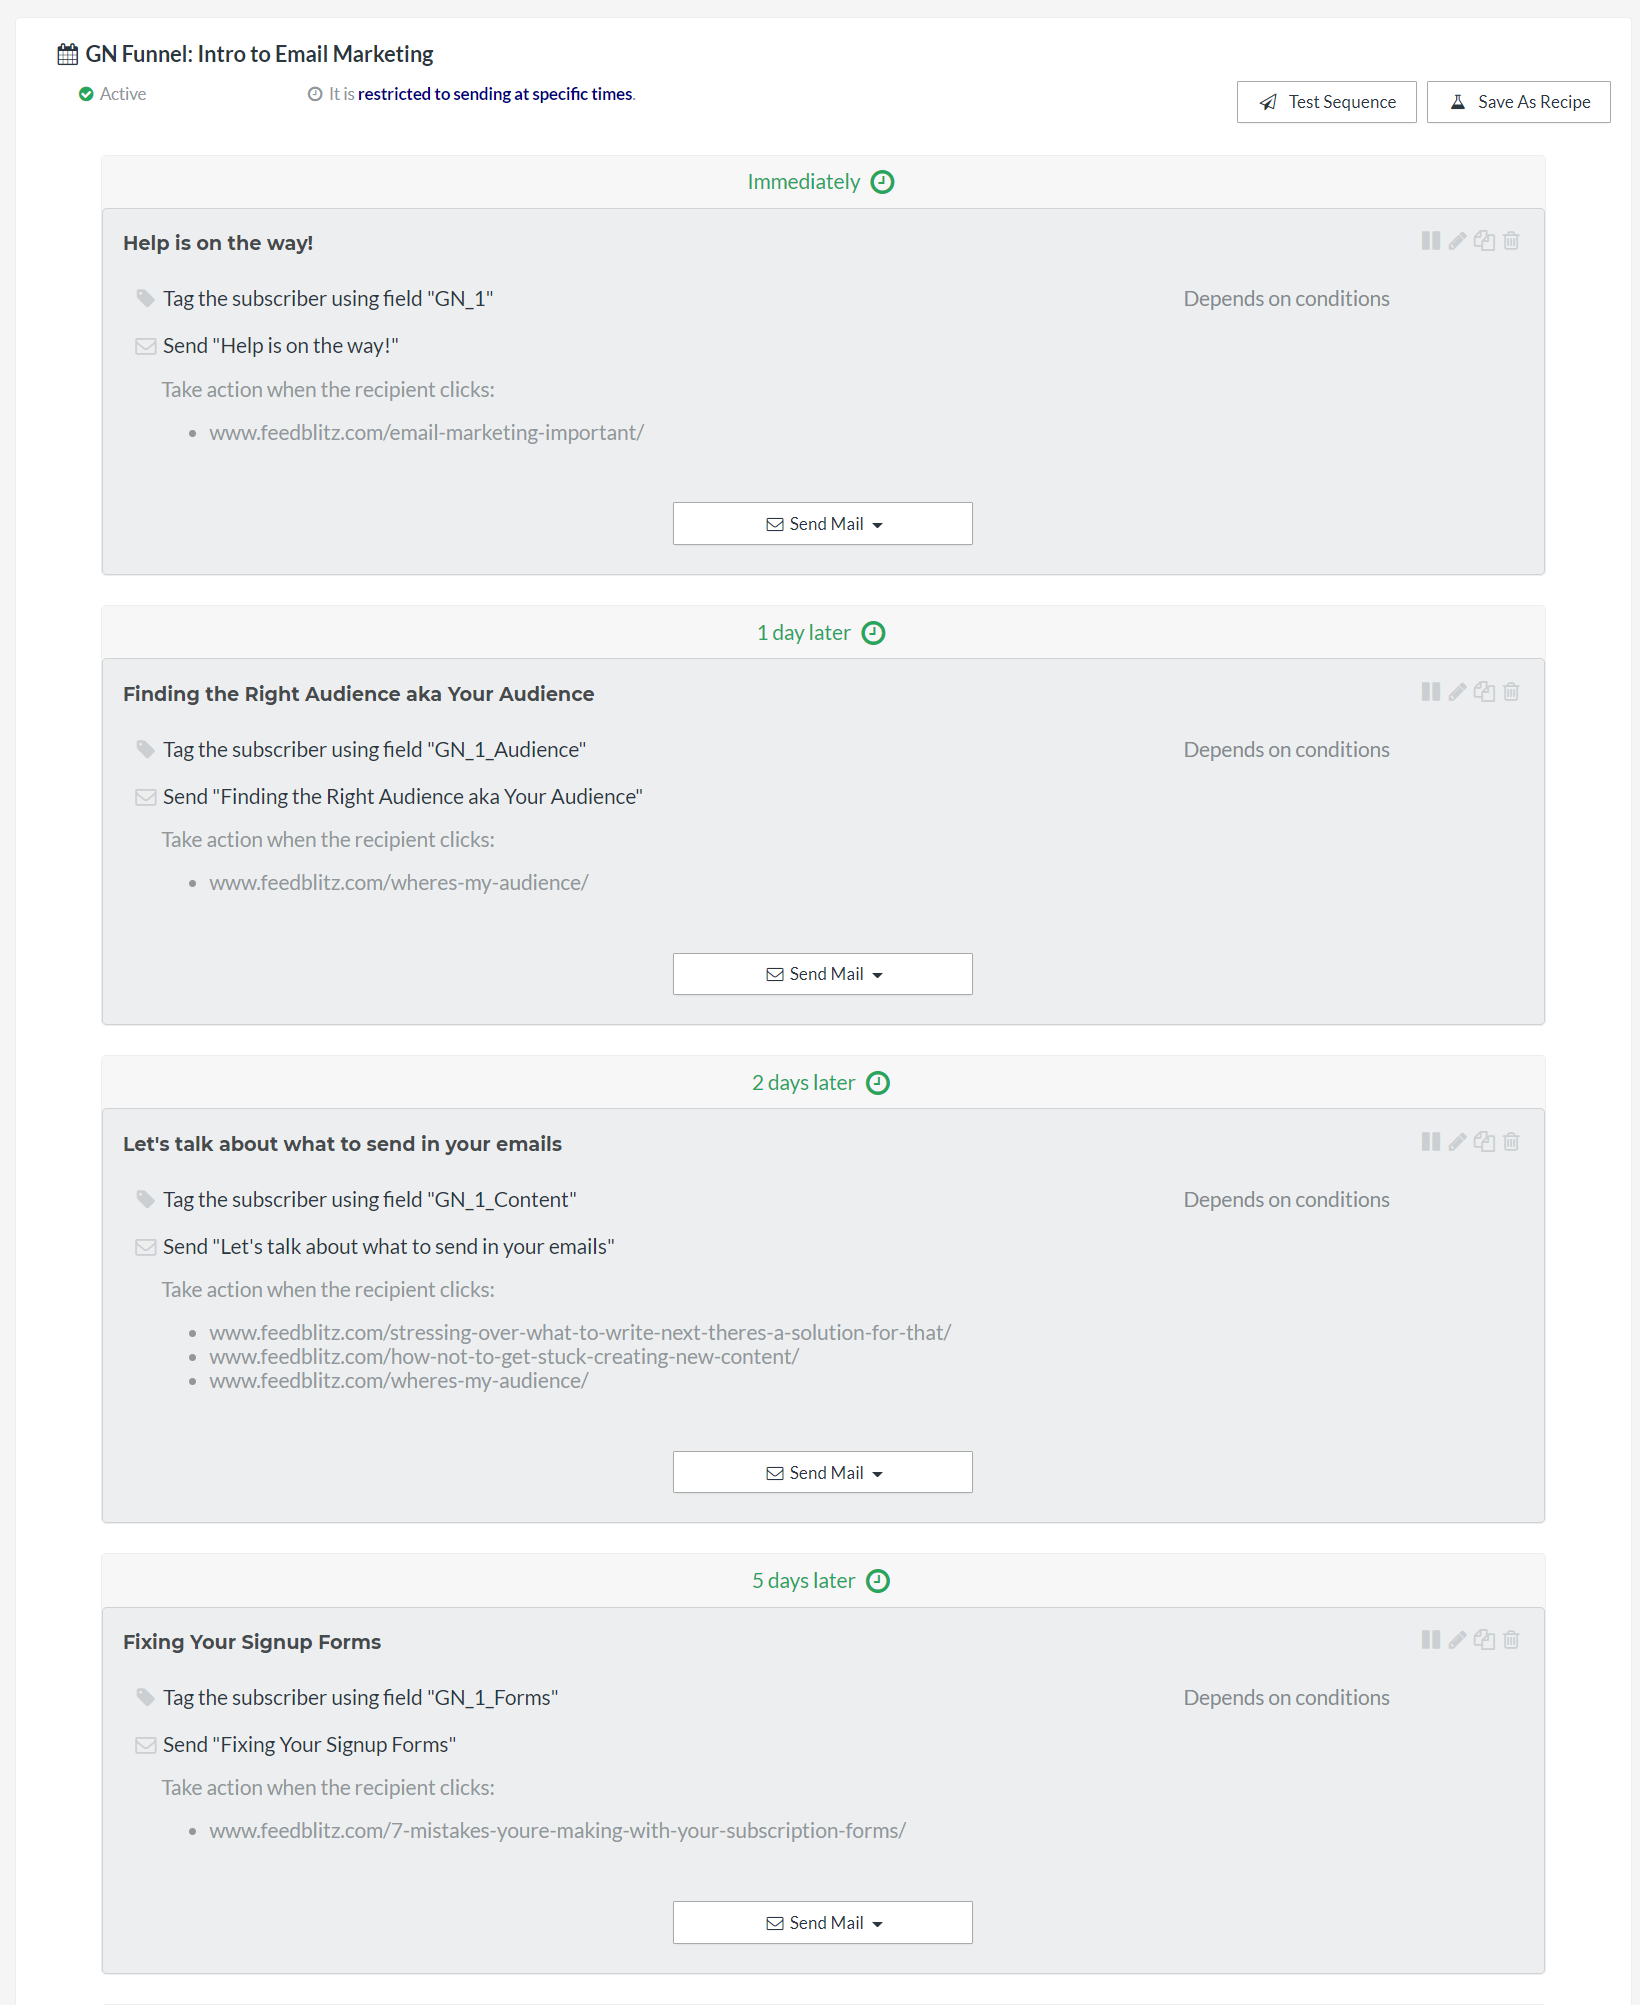 Preview of a funnel sequence for email automation example.